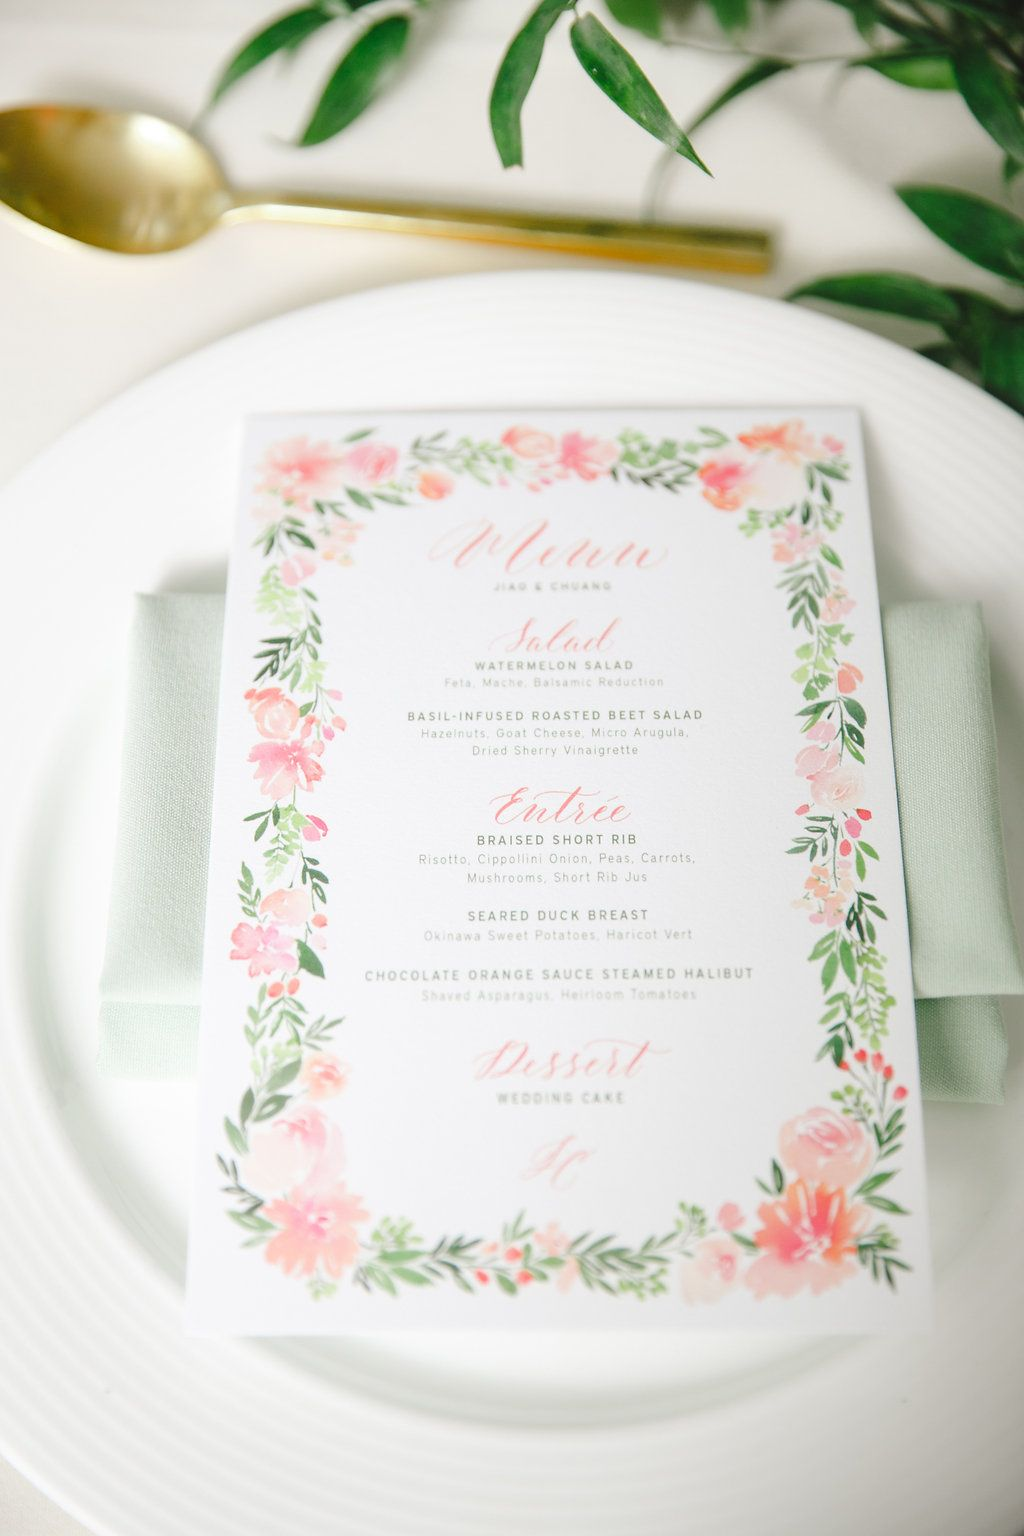 Nyc Wedding Planner New York Wedding Planner Nyc Wedding Coordinator New York Wedding Coordin Wedding Planner Printables Wedding Planner Uk New York Wedding